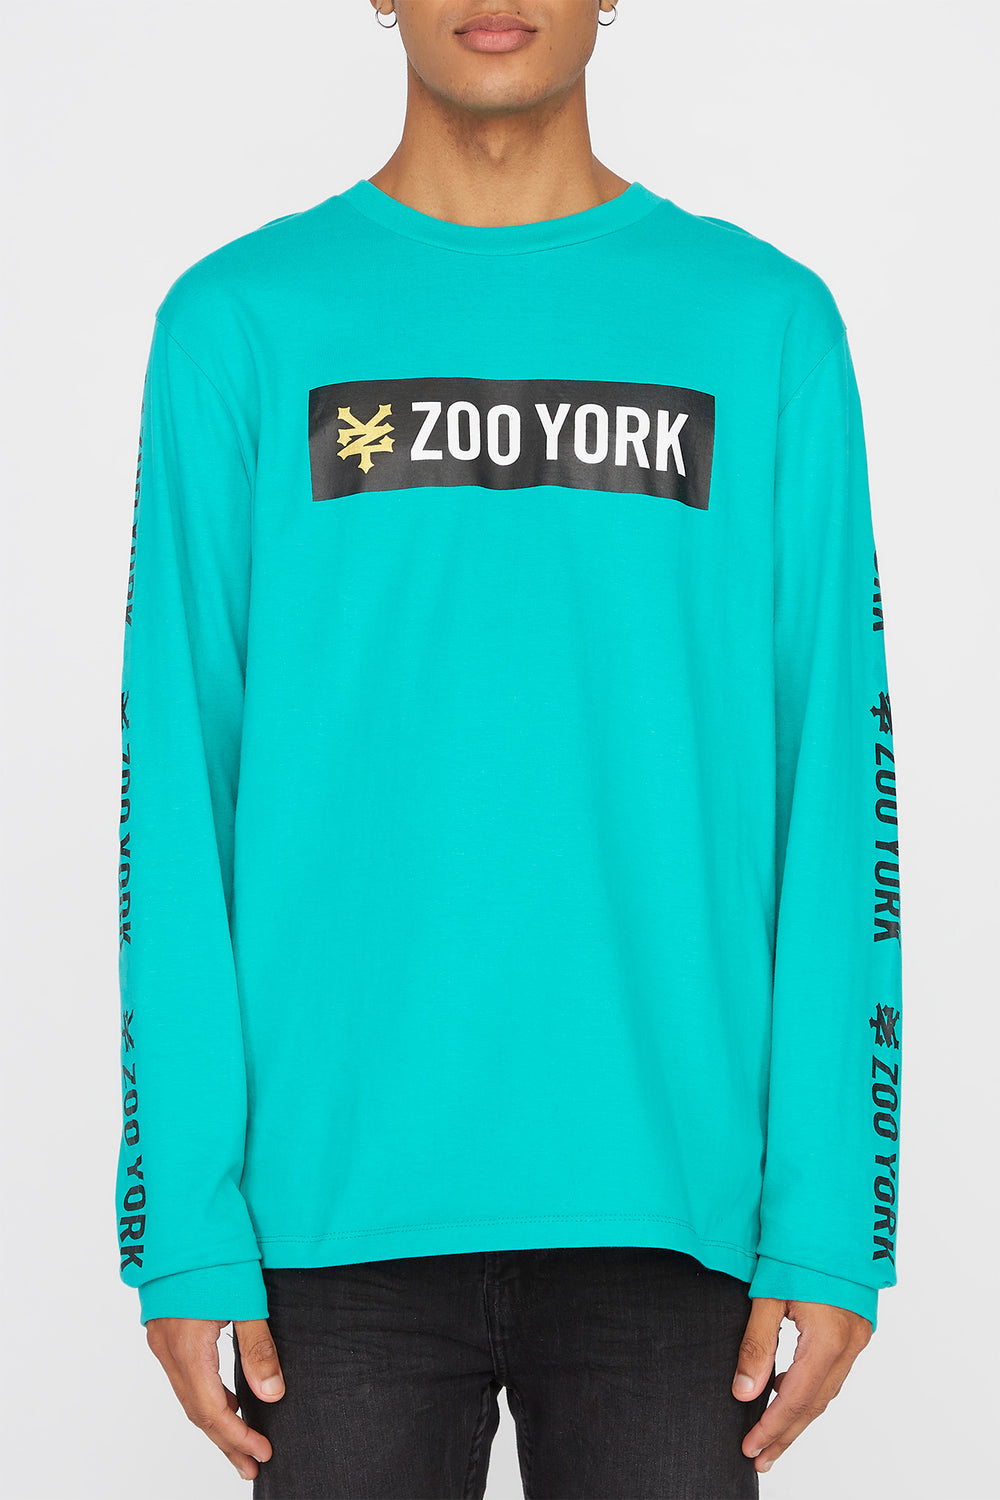 Zoo York Mens Classic Logo Long Sleeve Shirt Turquoise